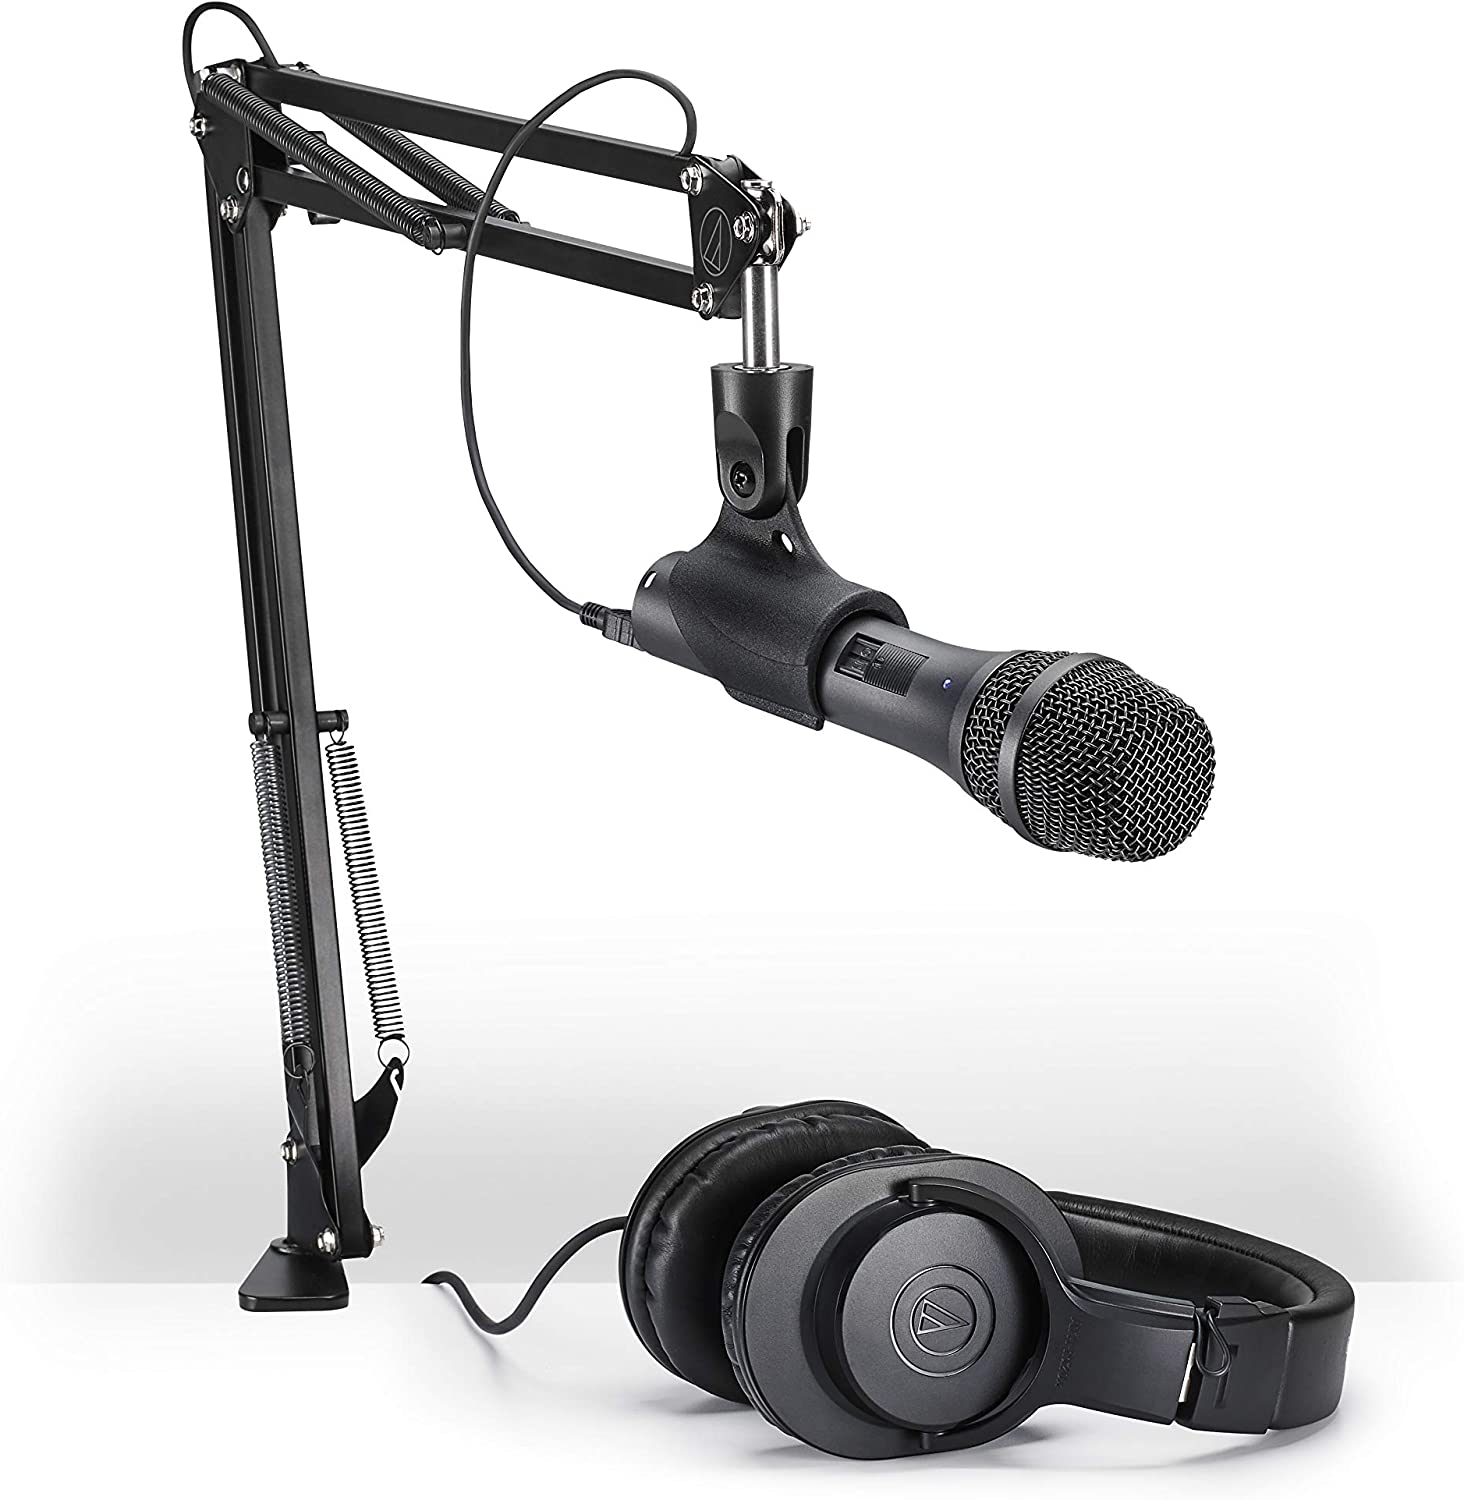 Audio-Technica AT2005USBPK Vocal Microphone Pack for Streaming/Podcasting, Includes USB and XLR Outputs, Adjustable Boom Arm, & Monitor Headphones,Black